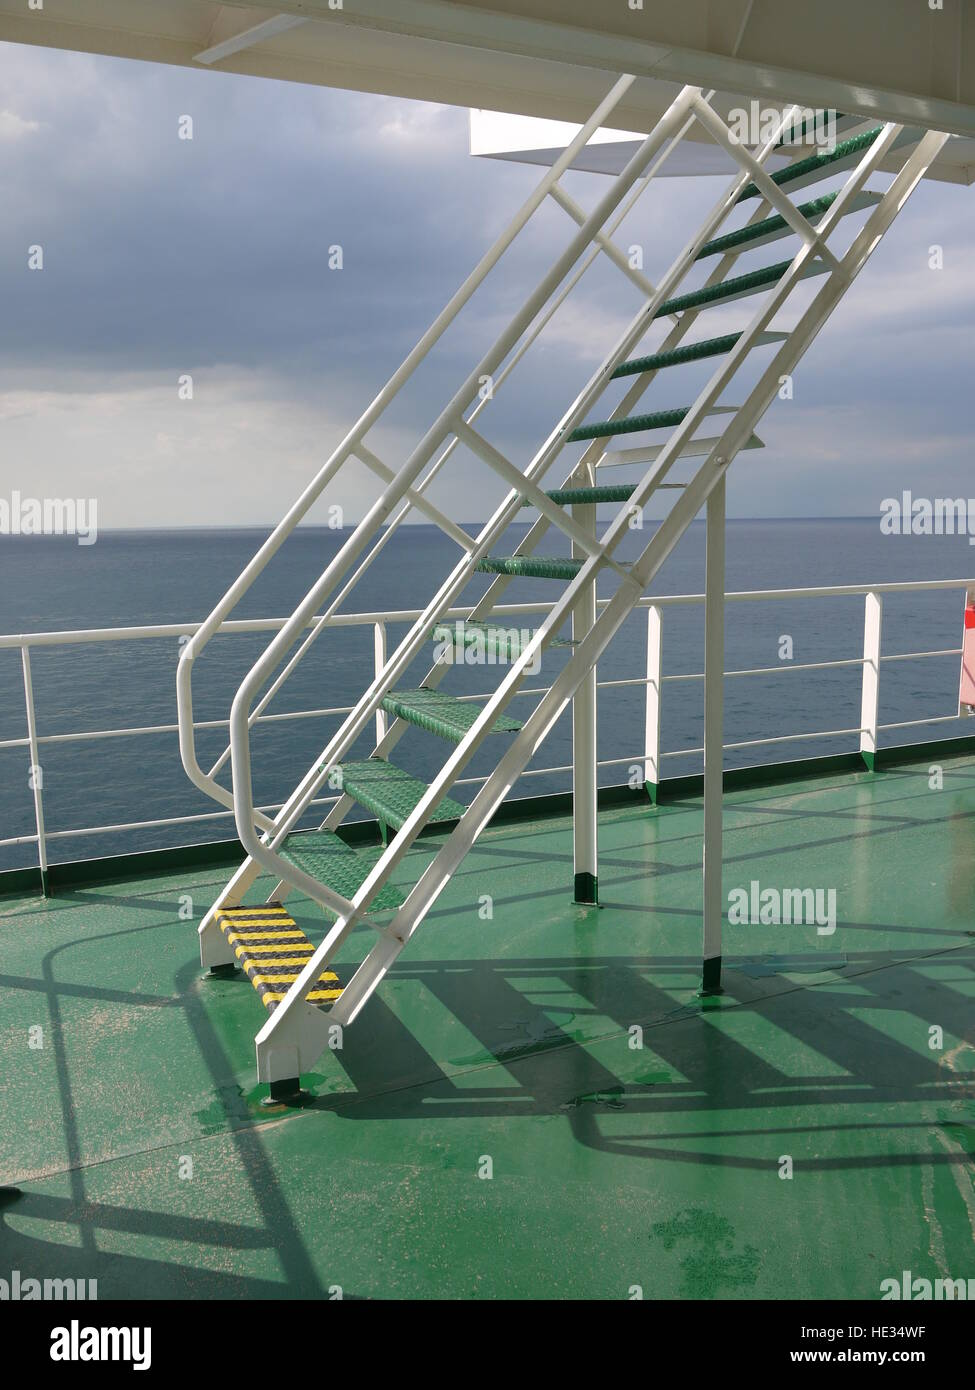 Outdoor Stairs On The Deck Of A Ship At Sea